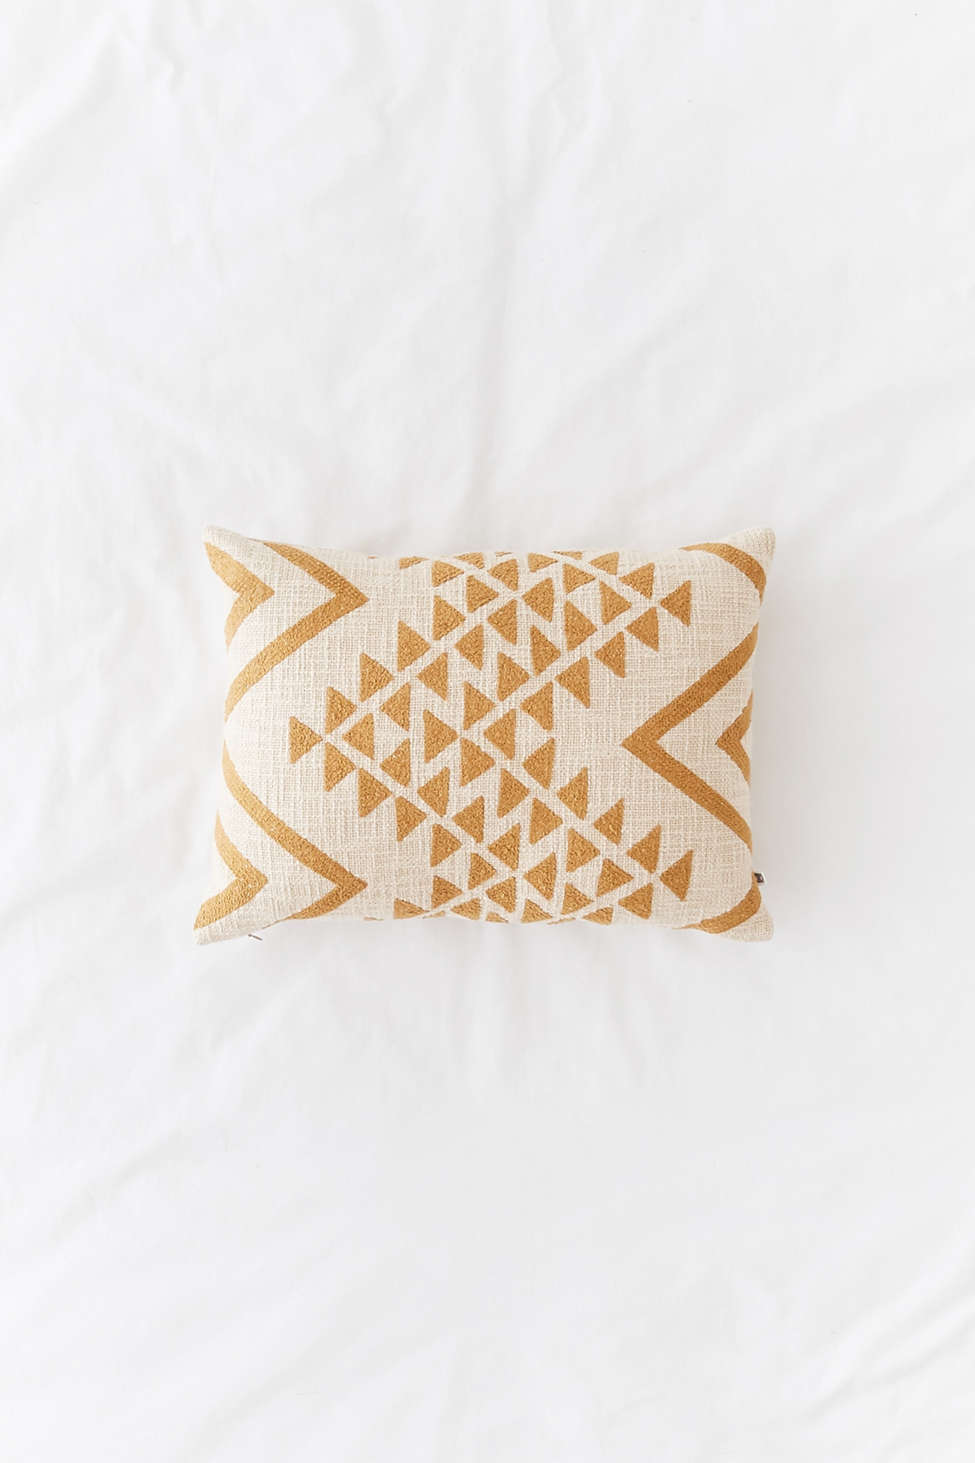 Slide View: 1: Elyse Embroidered Lumbar Pillow